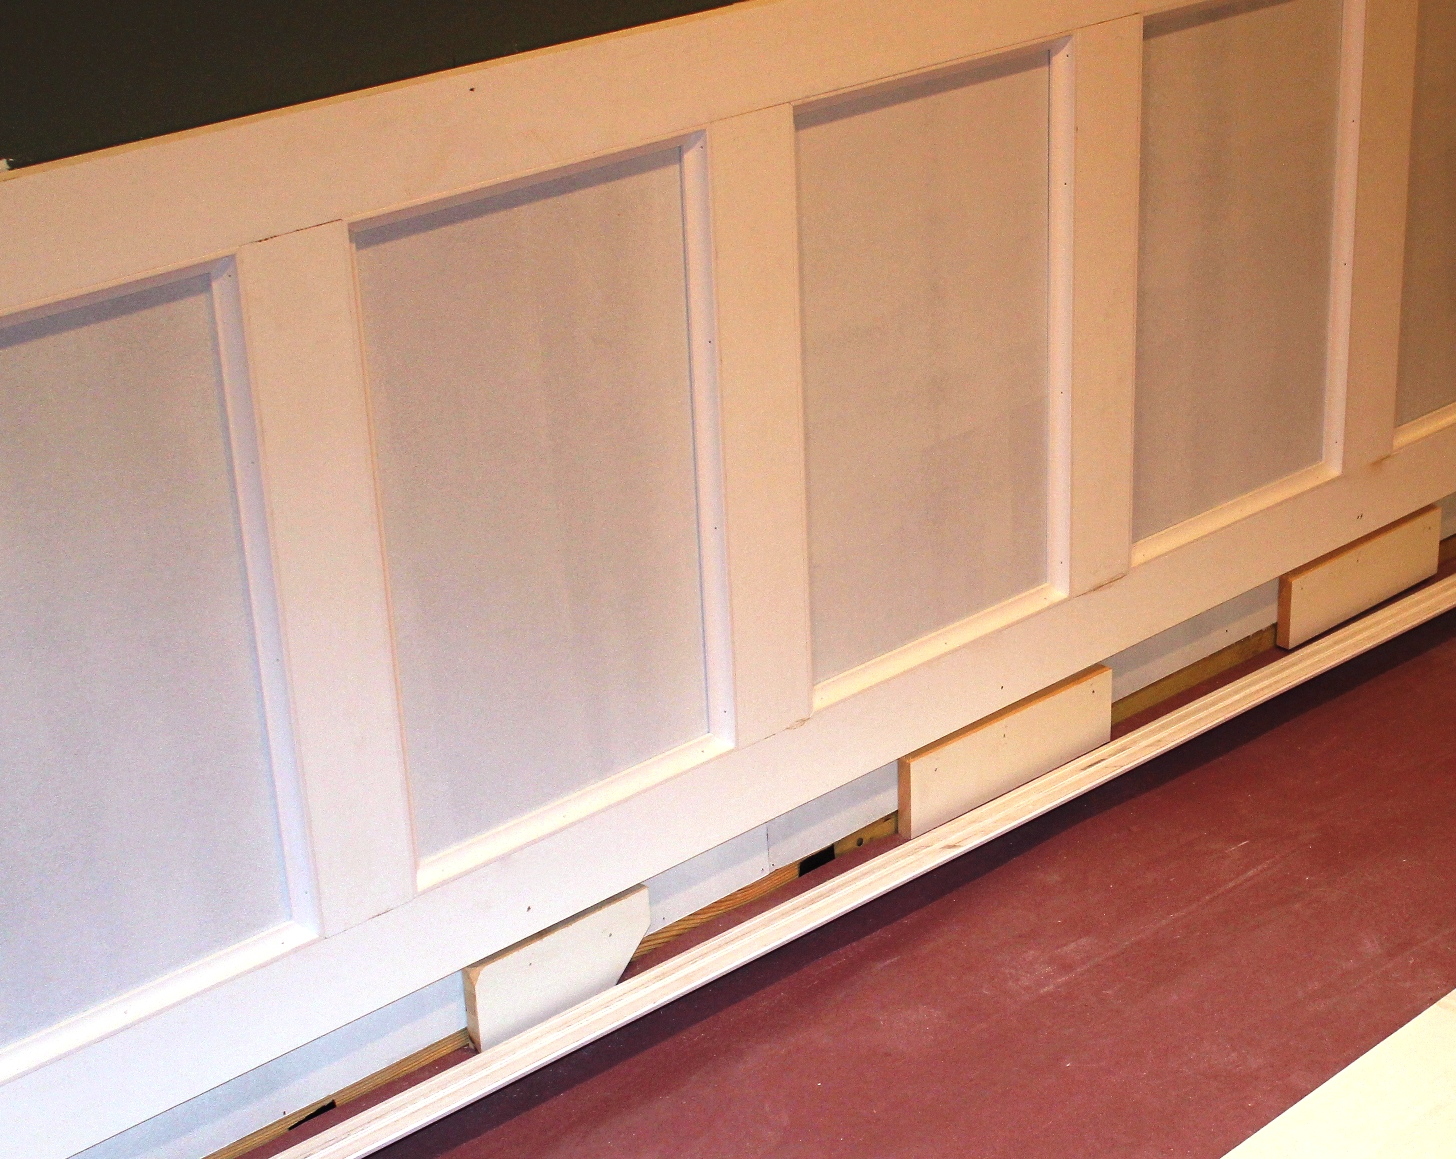 Wainscoting Dining Room How To Install Wainscoting Pro Construction Guide